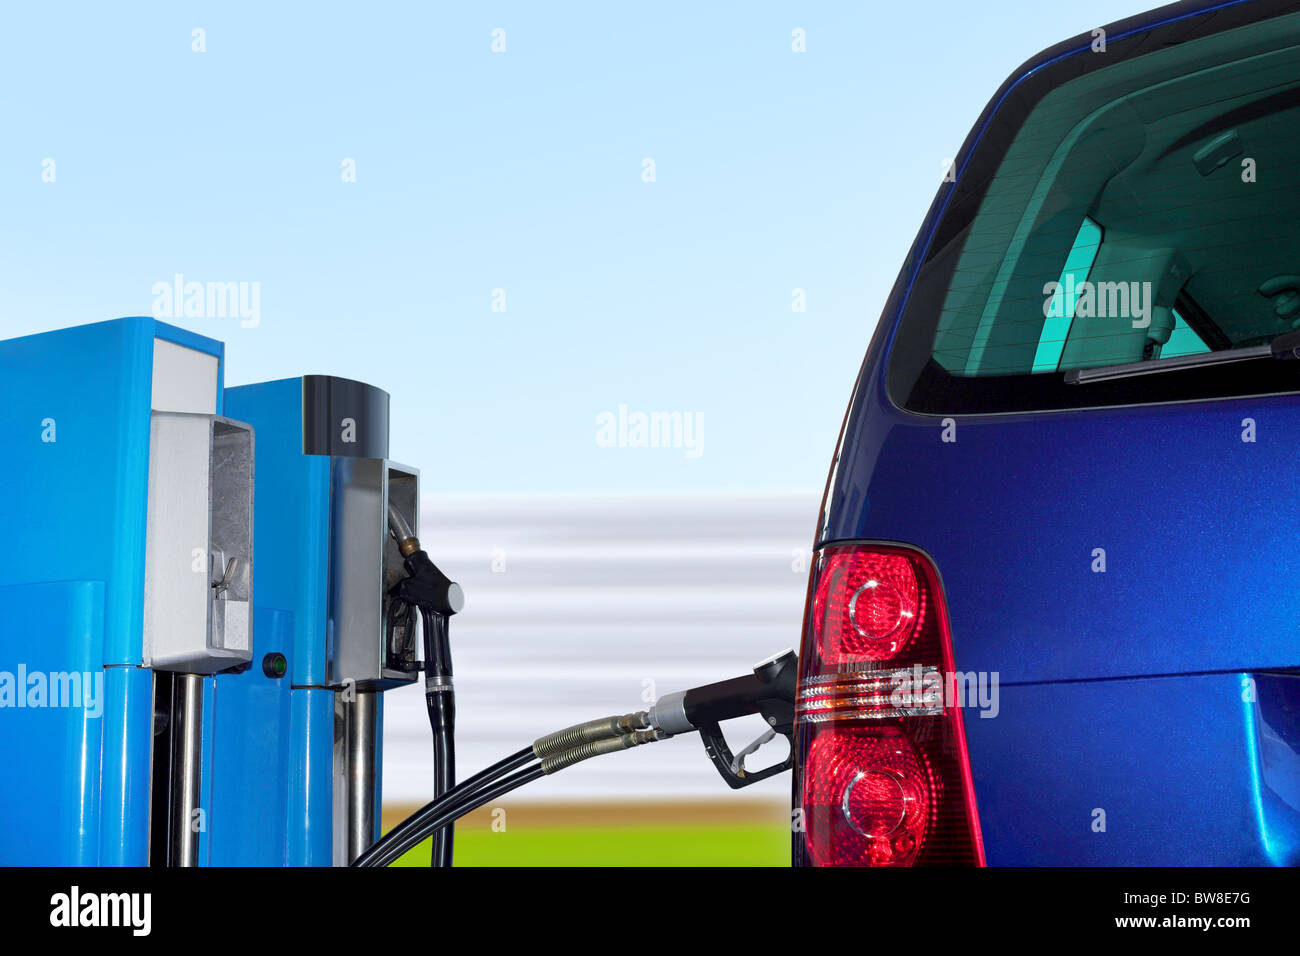 At the gas station pump putting gas into the car - Stock Image